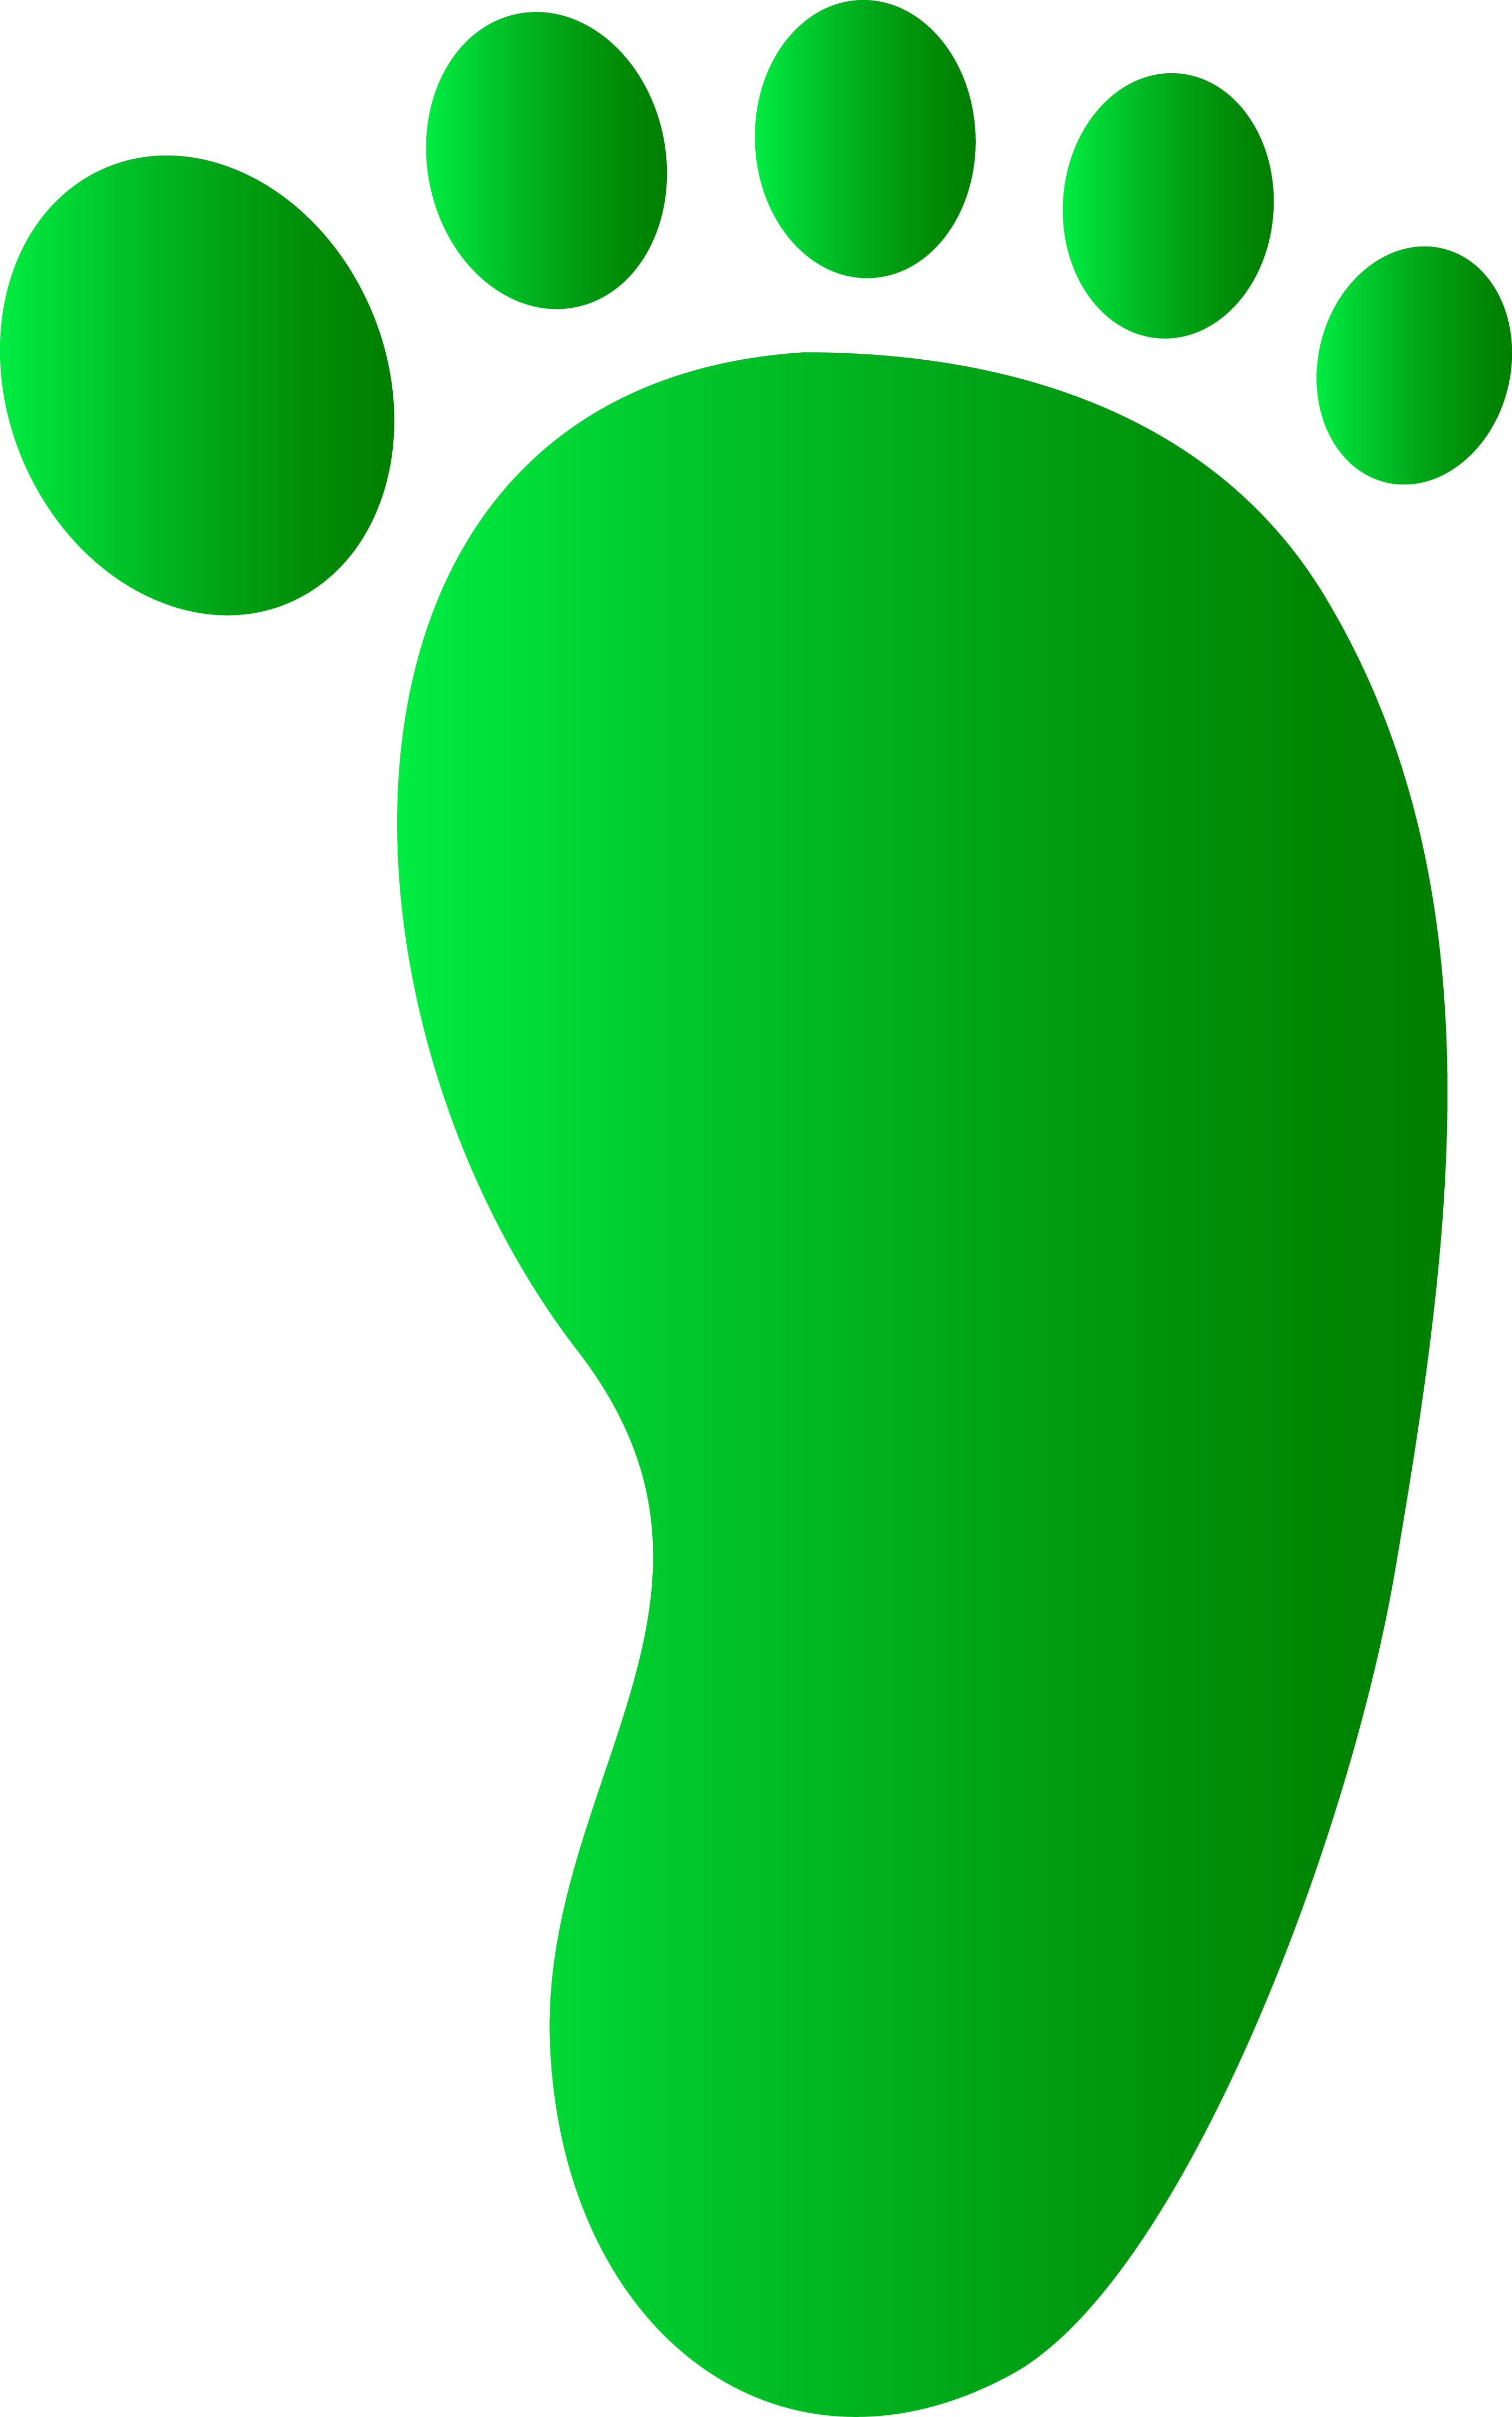 Soldier green footprints clipart